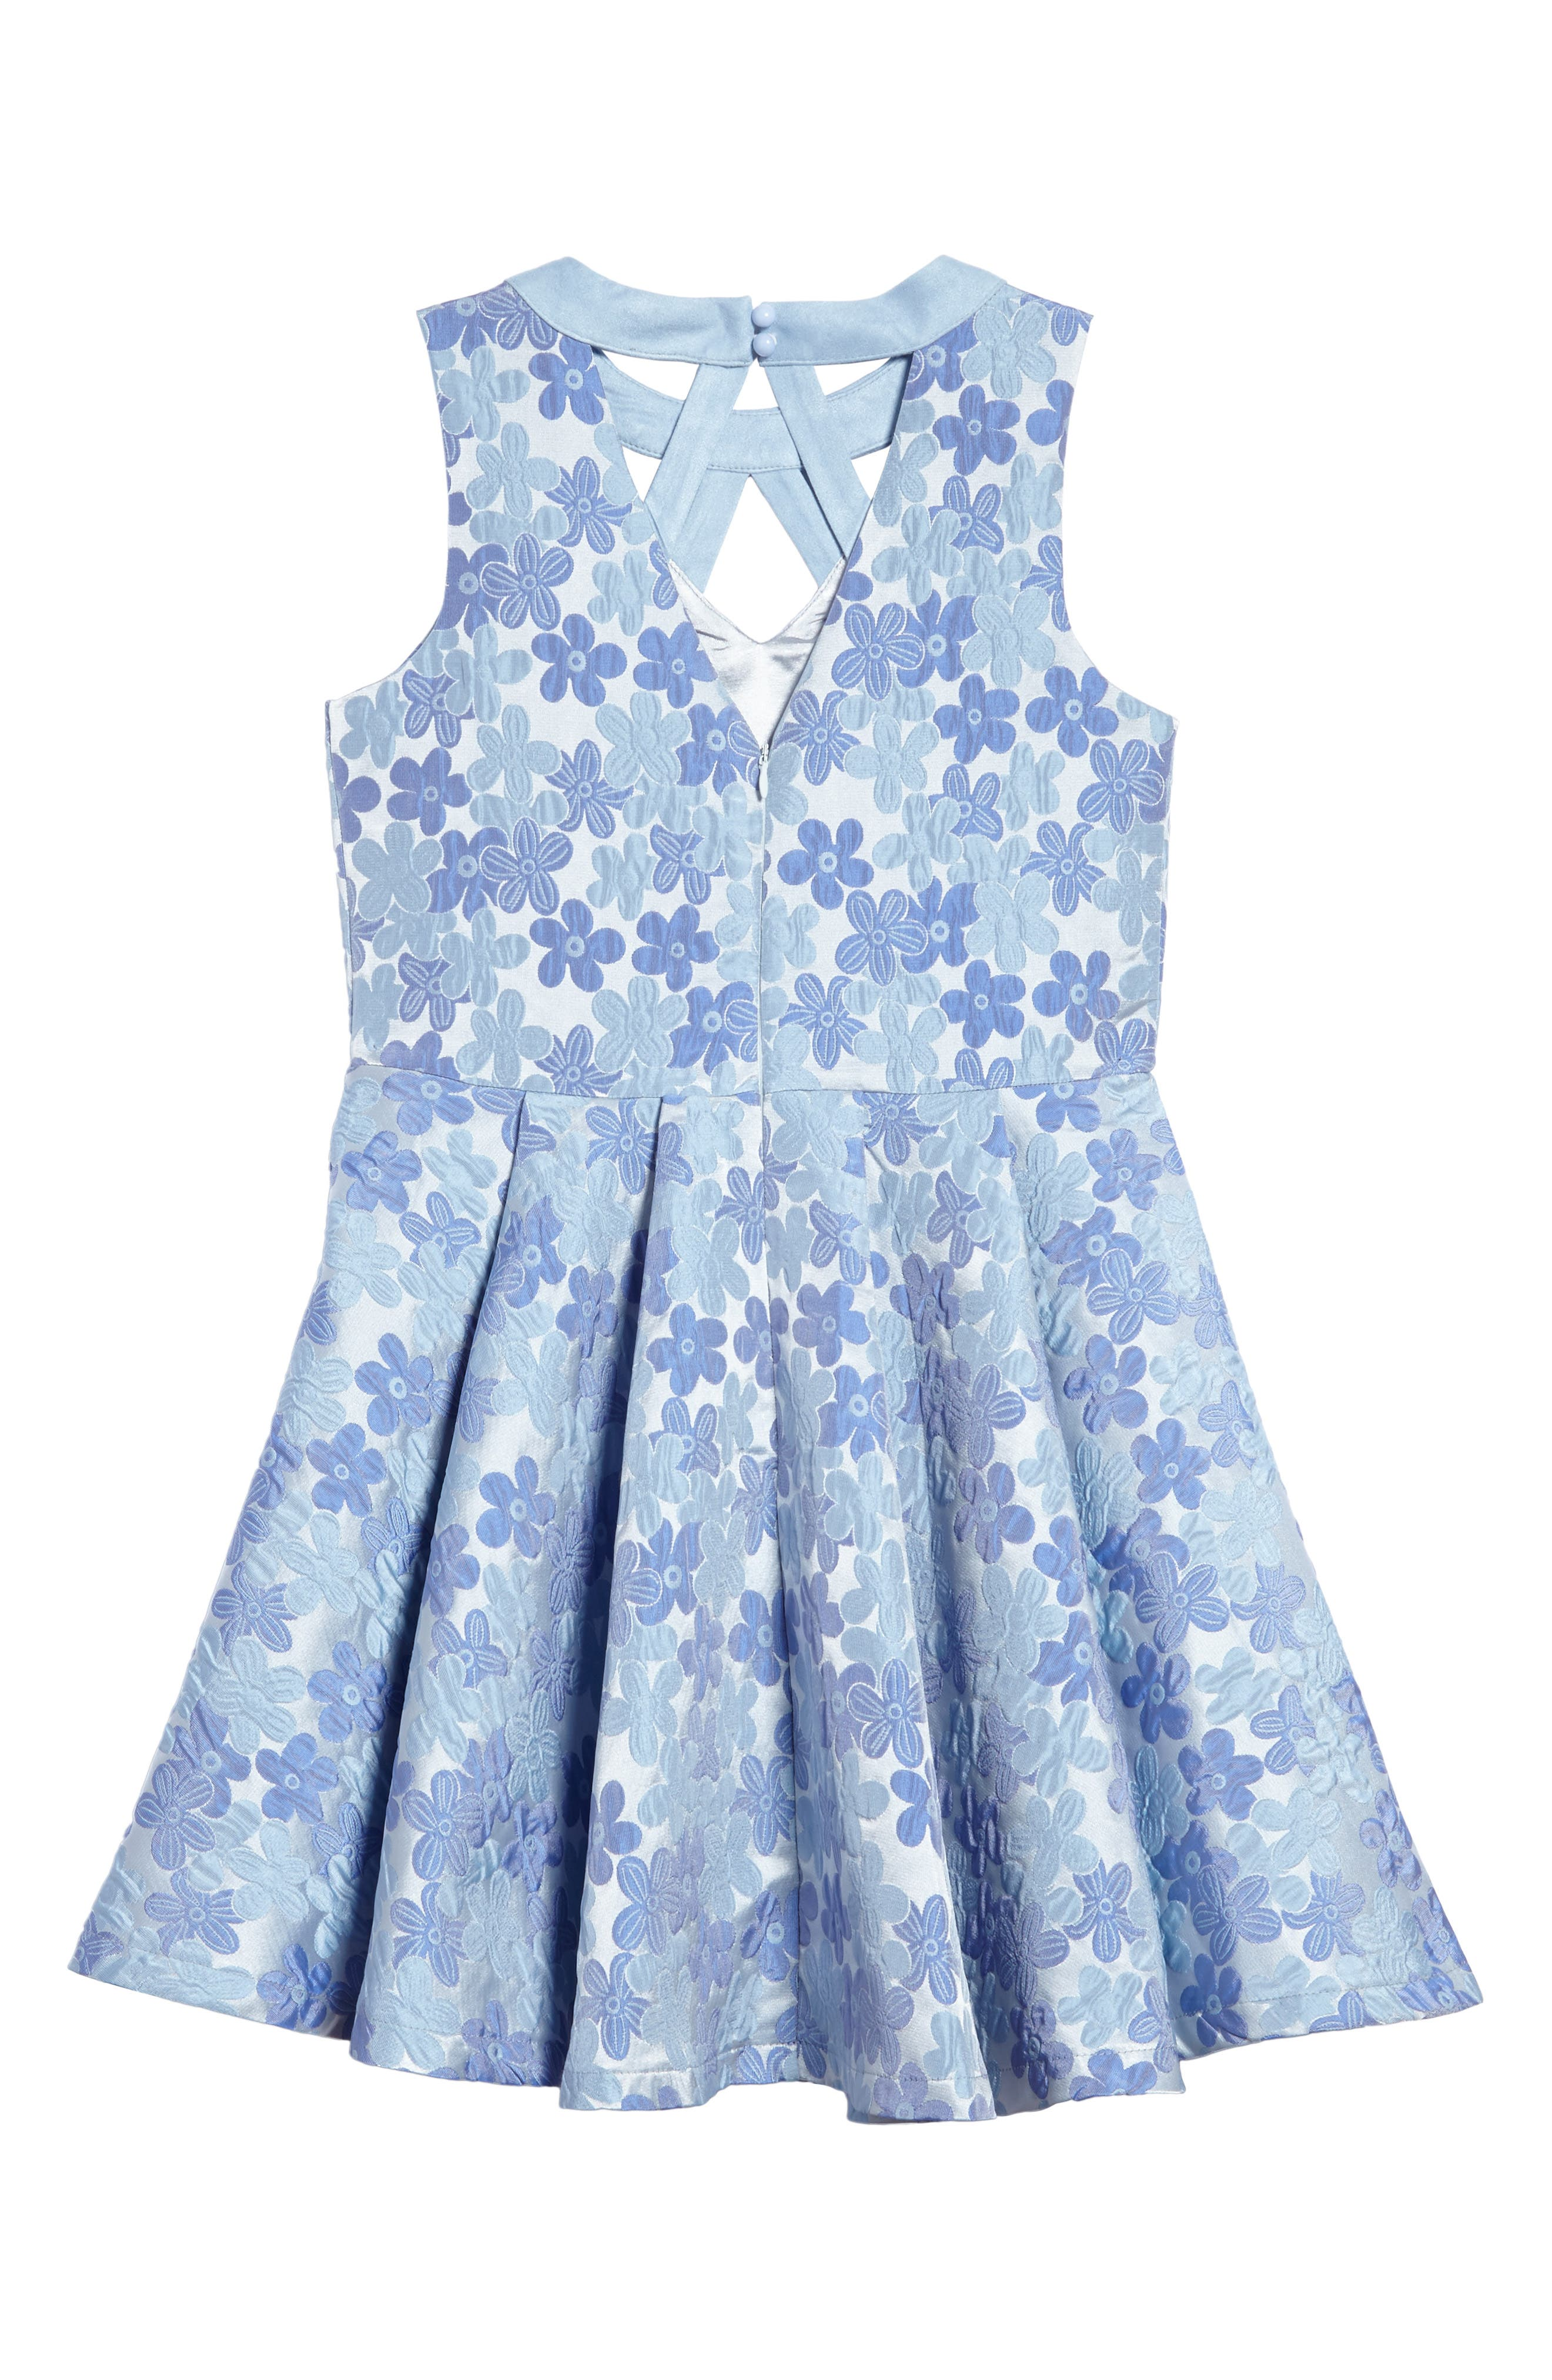 Daisy Brocade Fit & Flare Dress,                             Alternate thumbnail 2, color,                             Periwinkle